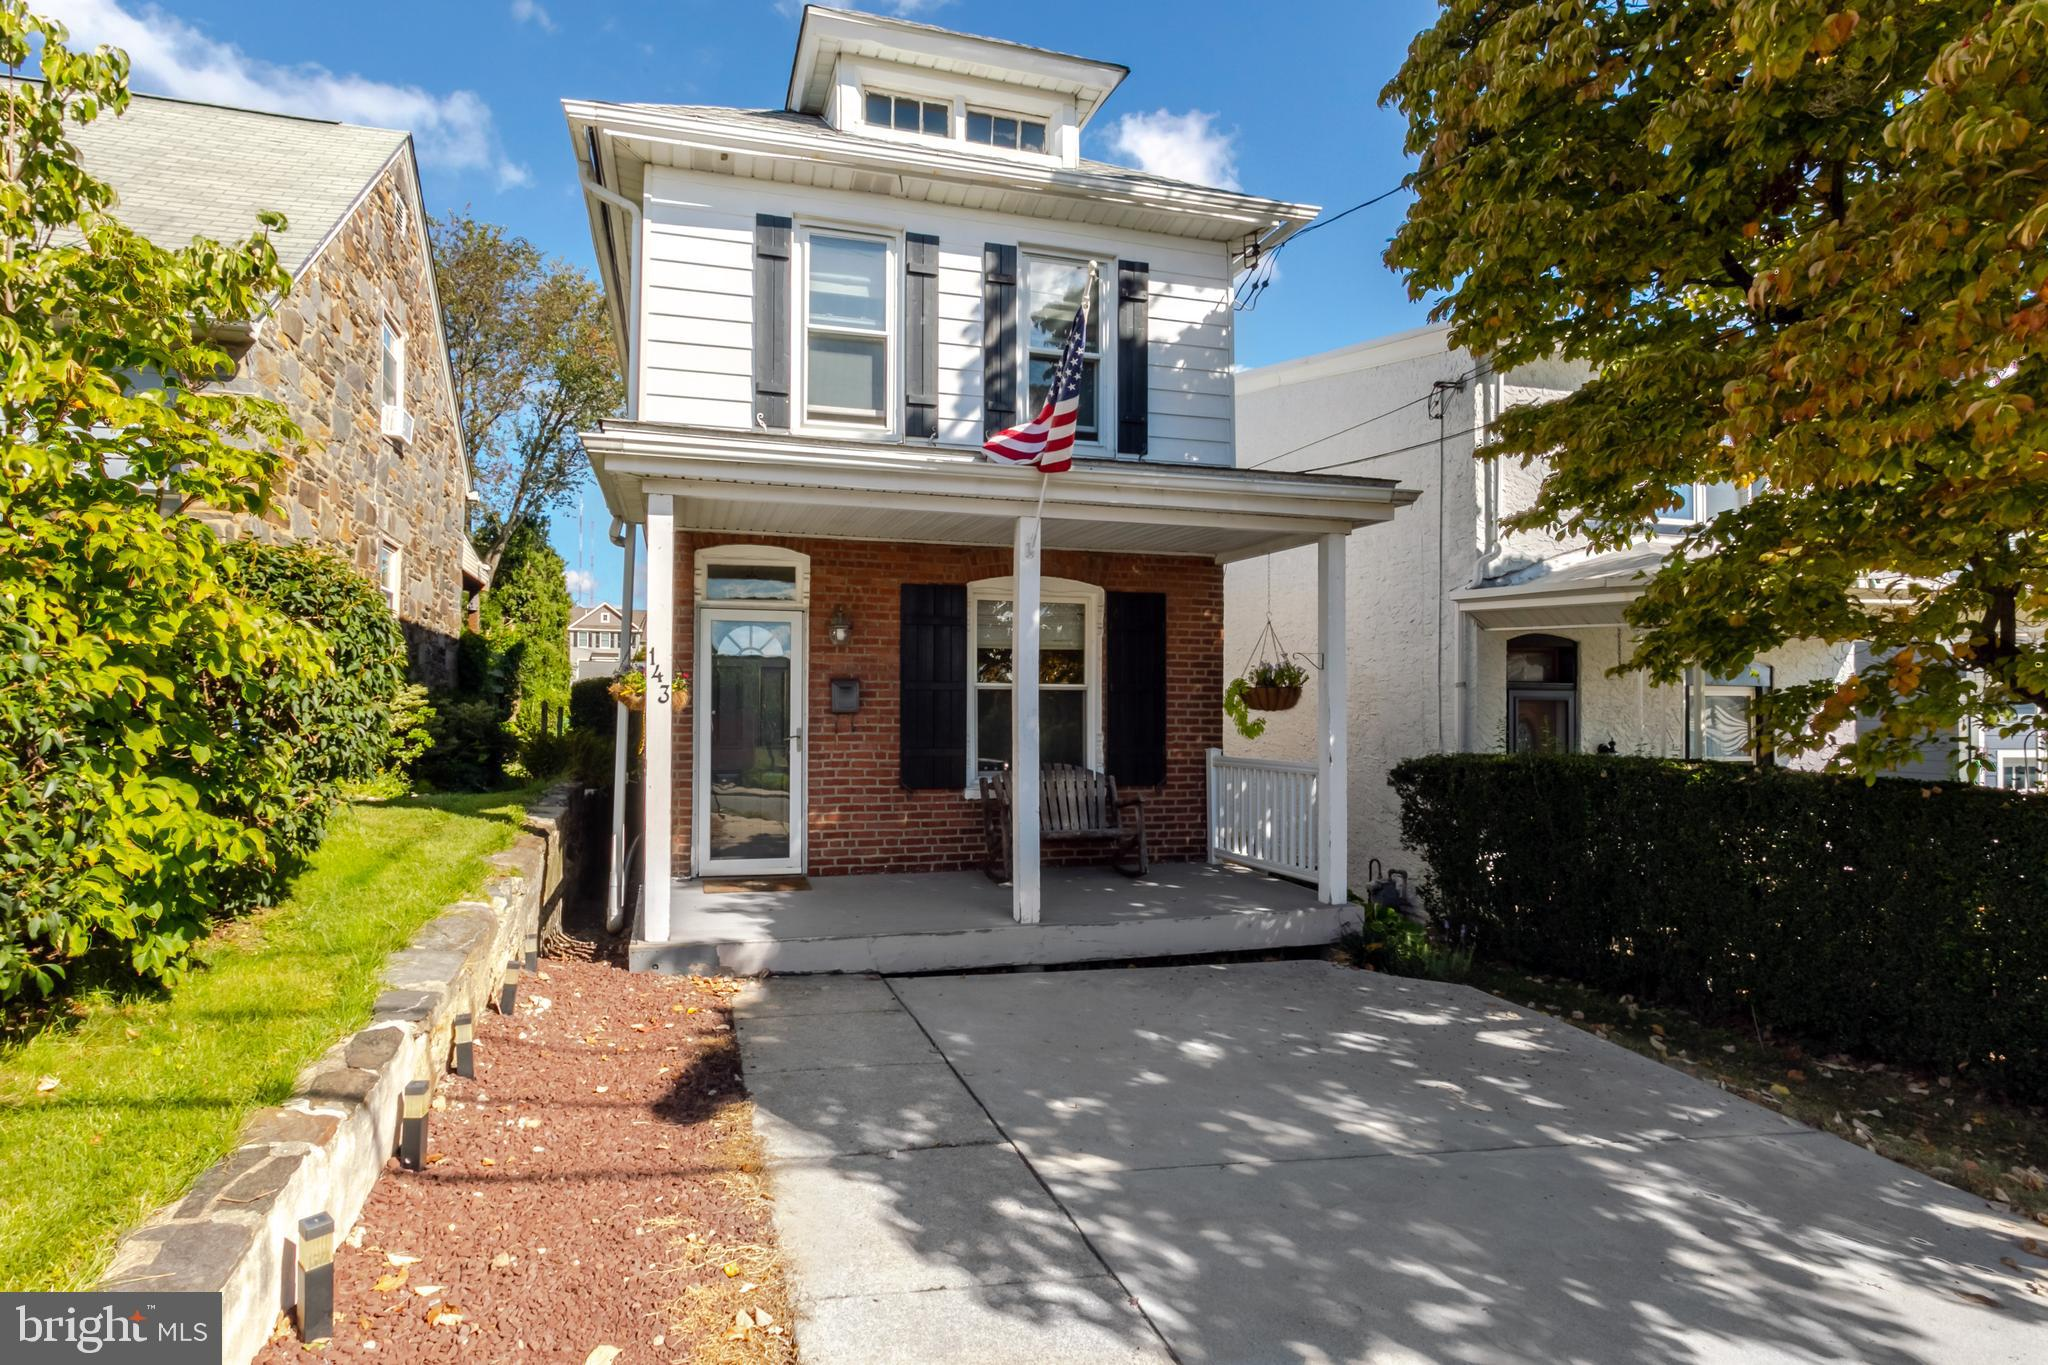 This Lower Merion gem of a home is completely move-in ready, has a beautiful and fully fenced backyard, private drive, front porch and is adorable!  Take advantage of the amazing location and one of the most highly sought after school districts!  This picture perfect 3 bedroom 1.5 bath home is ready to go!  Enter at the covered front porch and into the living room.  Beautiful pine floors, high baseboards and tons of natural light pouring in make you happy the moment you walk in.  The living room opens directly to the dining room.  The renovated kitchen has plenty of white shaker cabinets, a large center island for seating and serving and stainless steel appliances including a gas range.  The pine flooring spans throughout the first floor for a nice cohesive look.  Off the kitchen you'll be happy to find a laundry space as well as a perfectly tucked away half bath and access to the large back deck and huge fully fenced backyard!  Professionally landscaped and ready to enjoy!  The 2nd floor has 3 bedrooms with a primary that offers a built in storage unit.  The hall bath is spacious and fresh.  Plenty of storage in the basement of the home.  You can't beat the value of this single family home in the heart of Lower Merion Township!